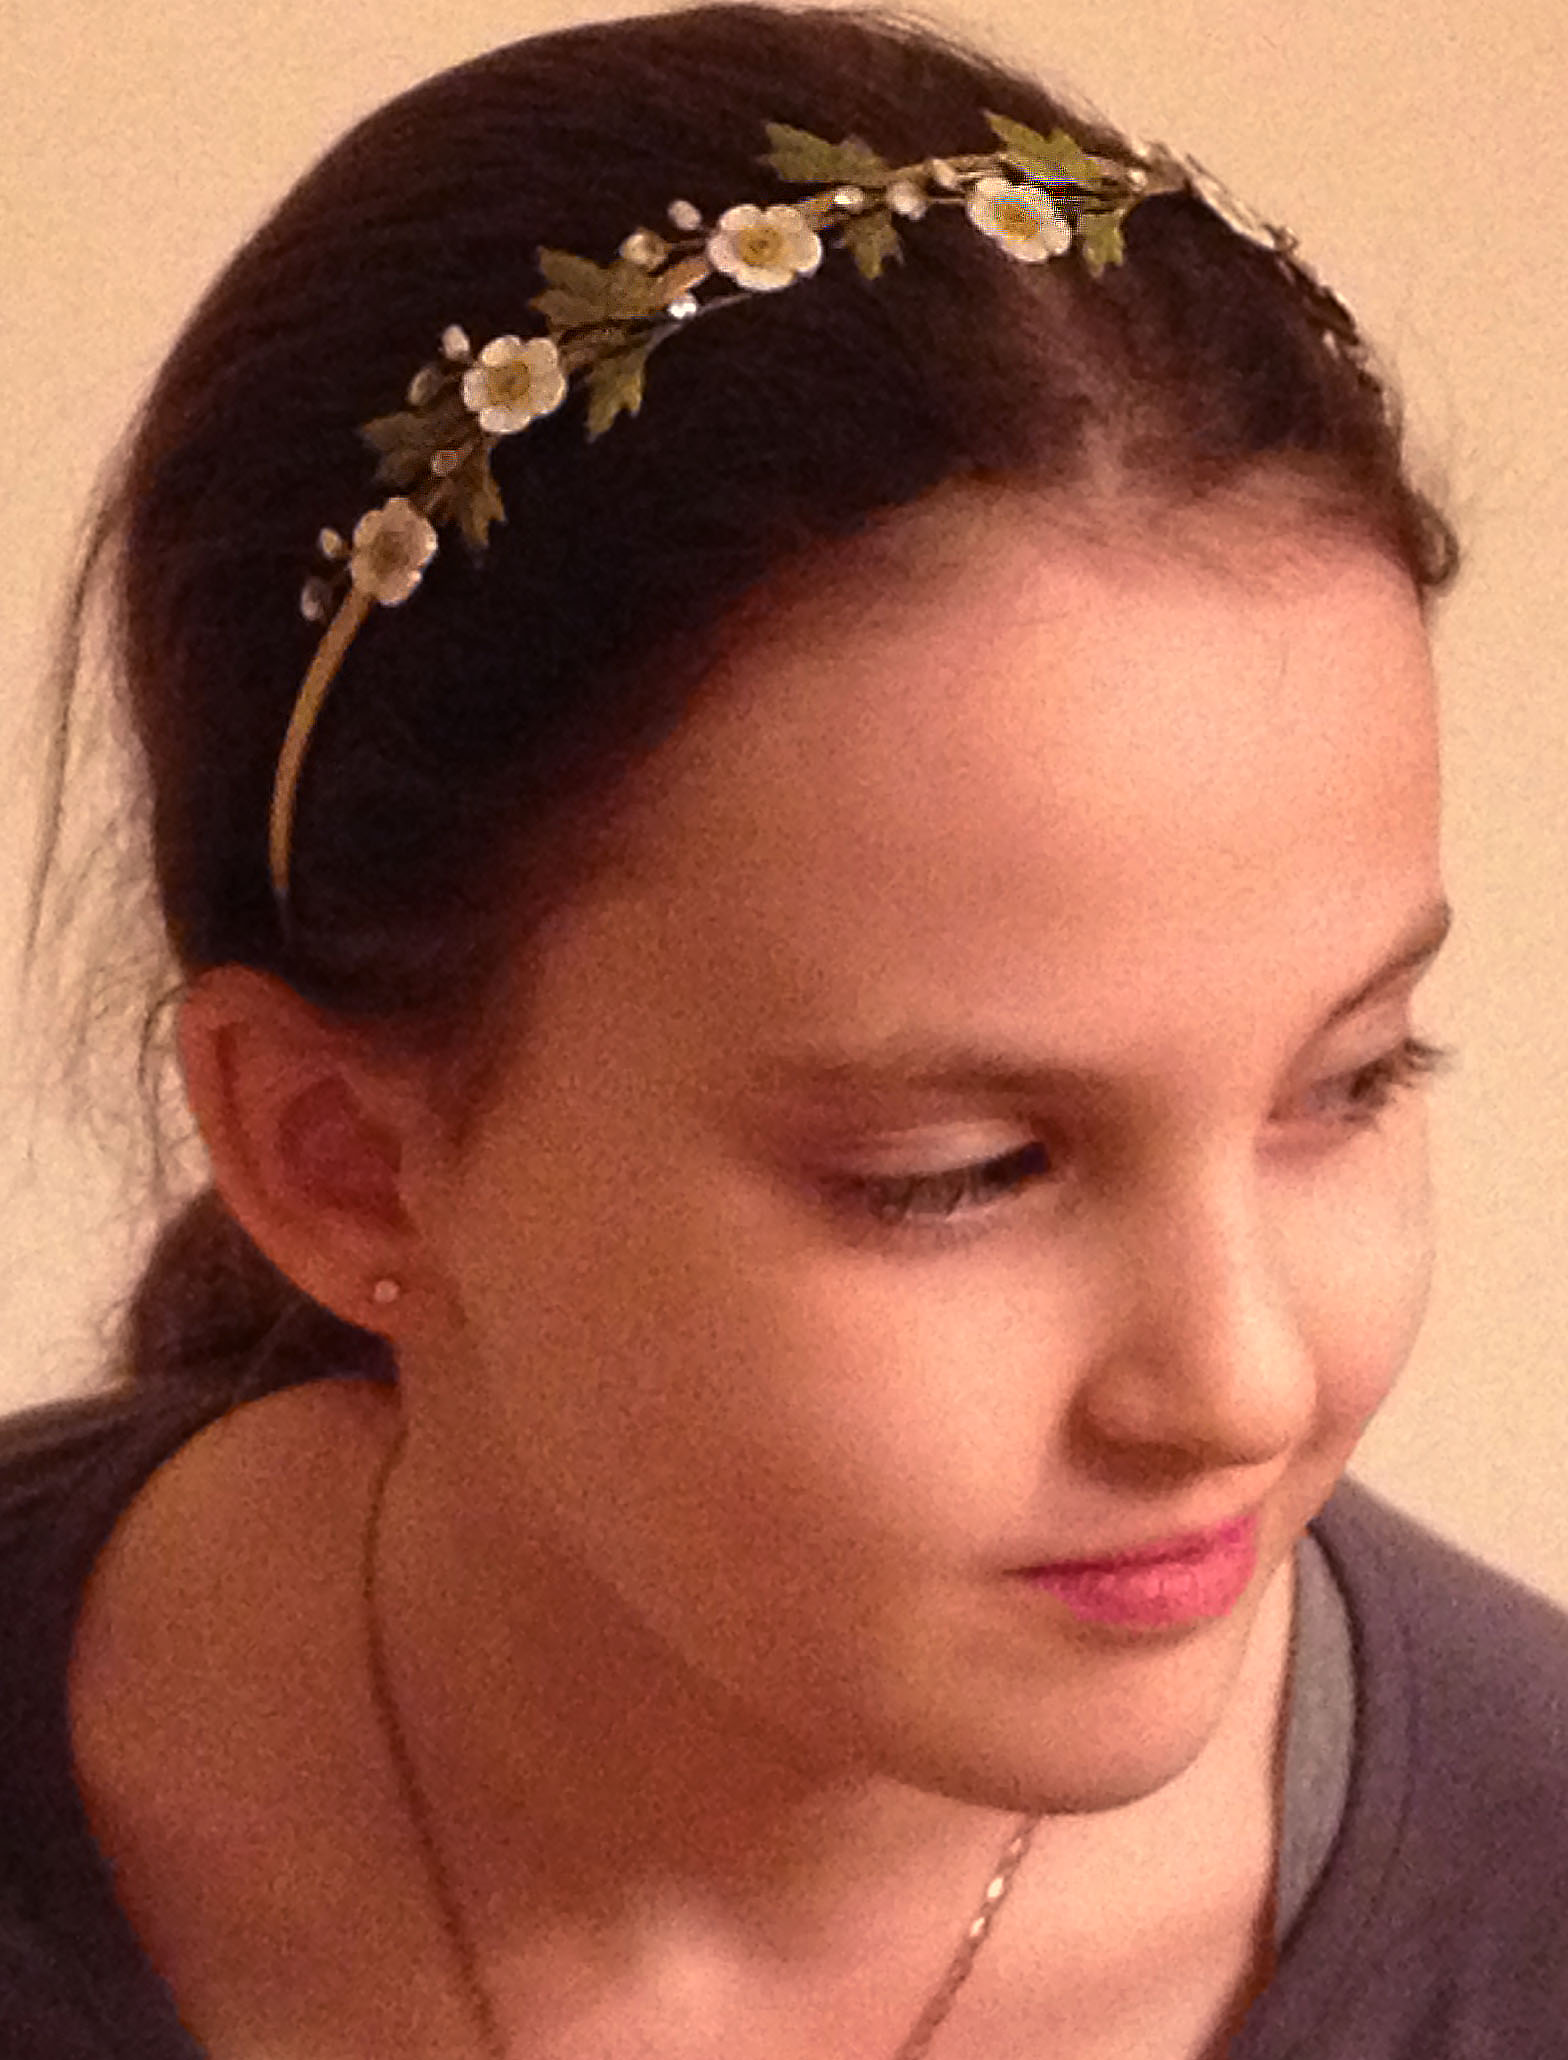 Tallie with diadem